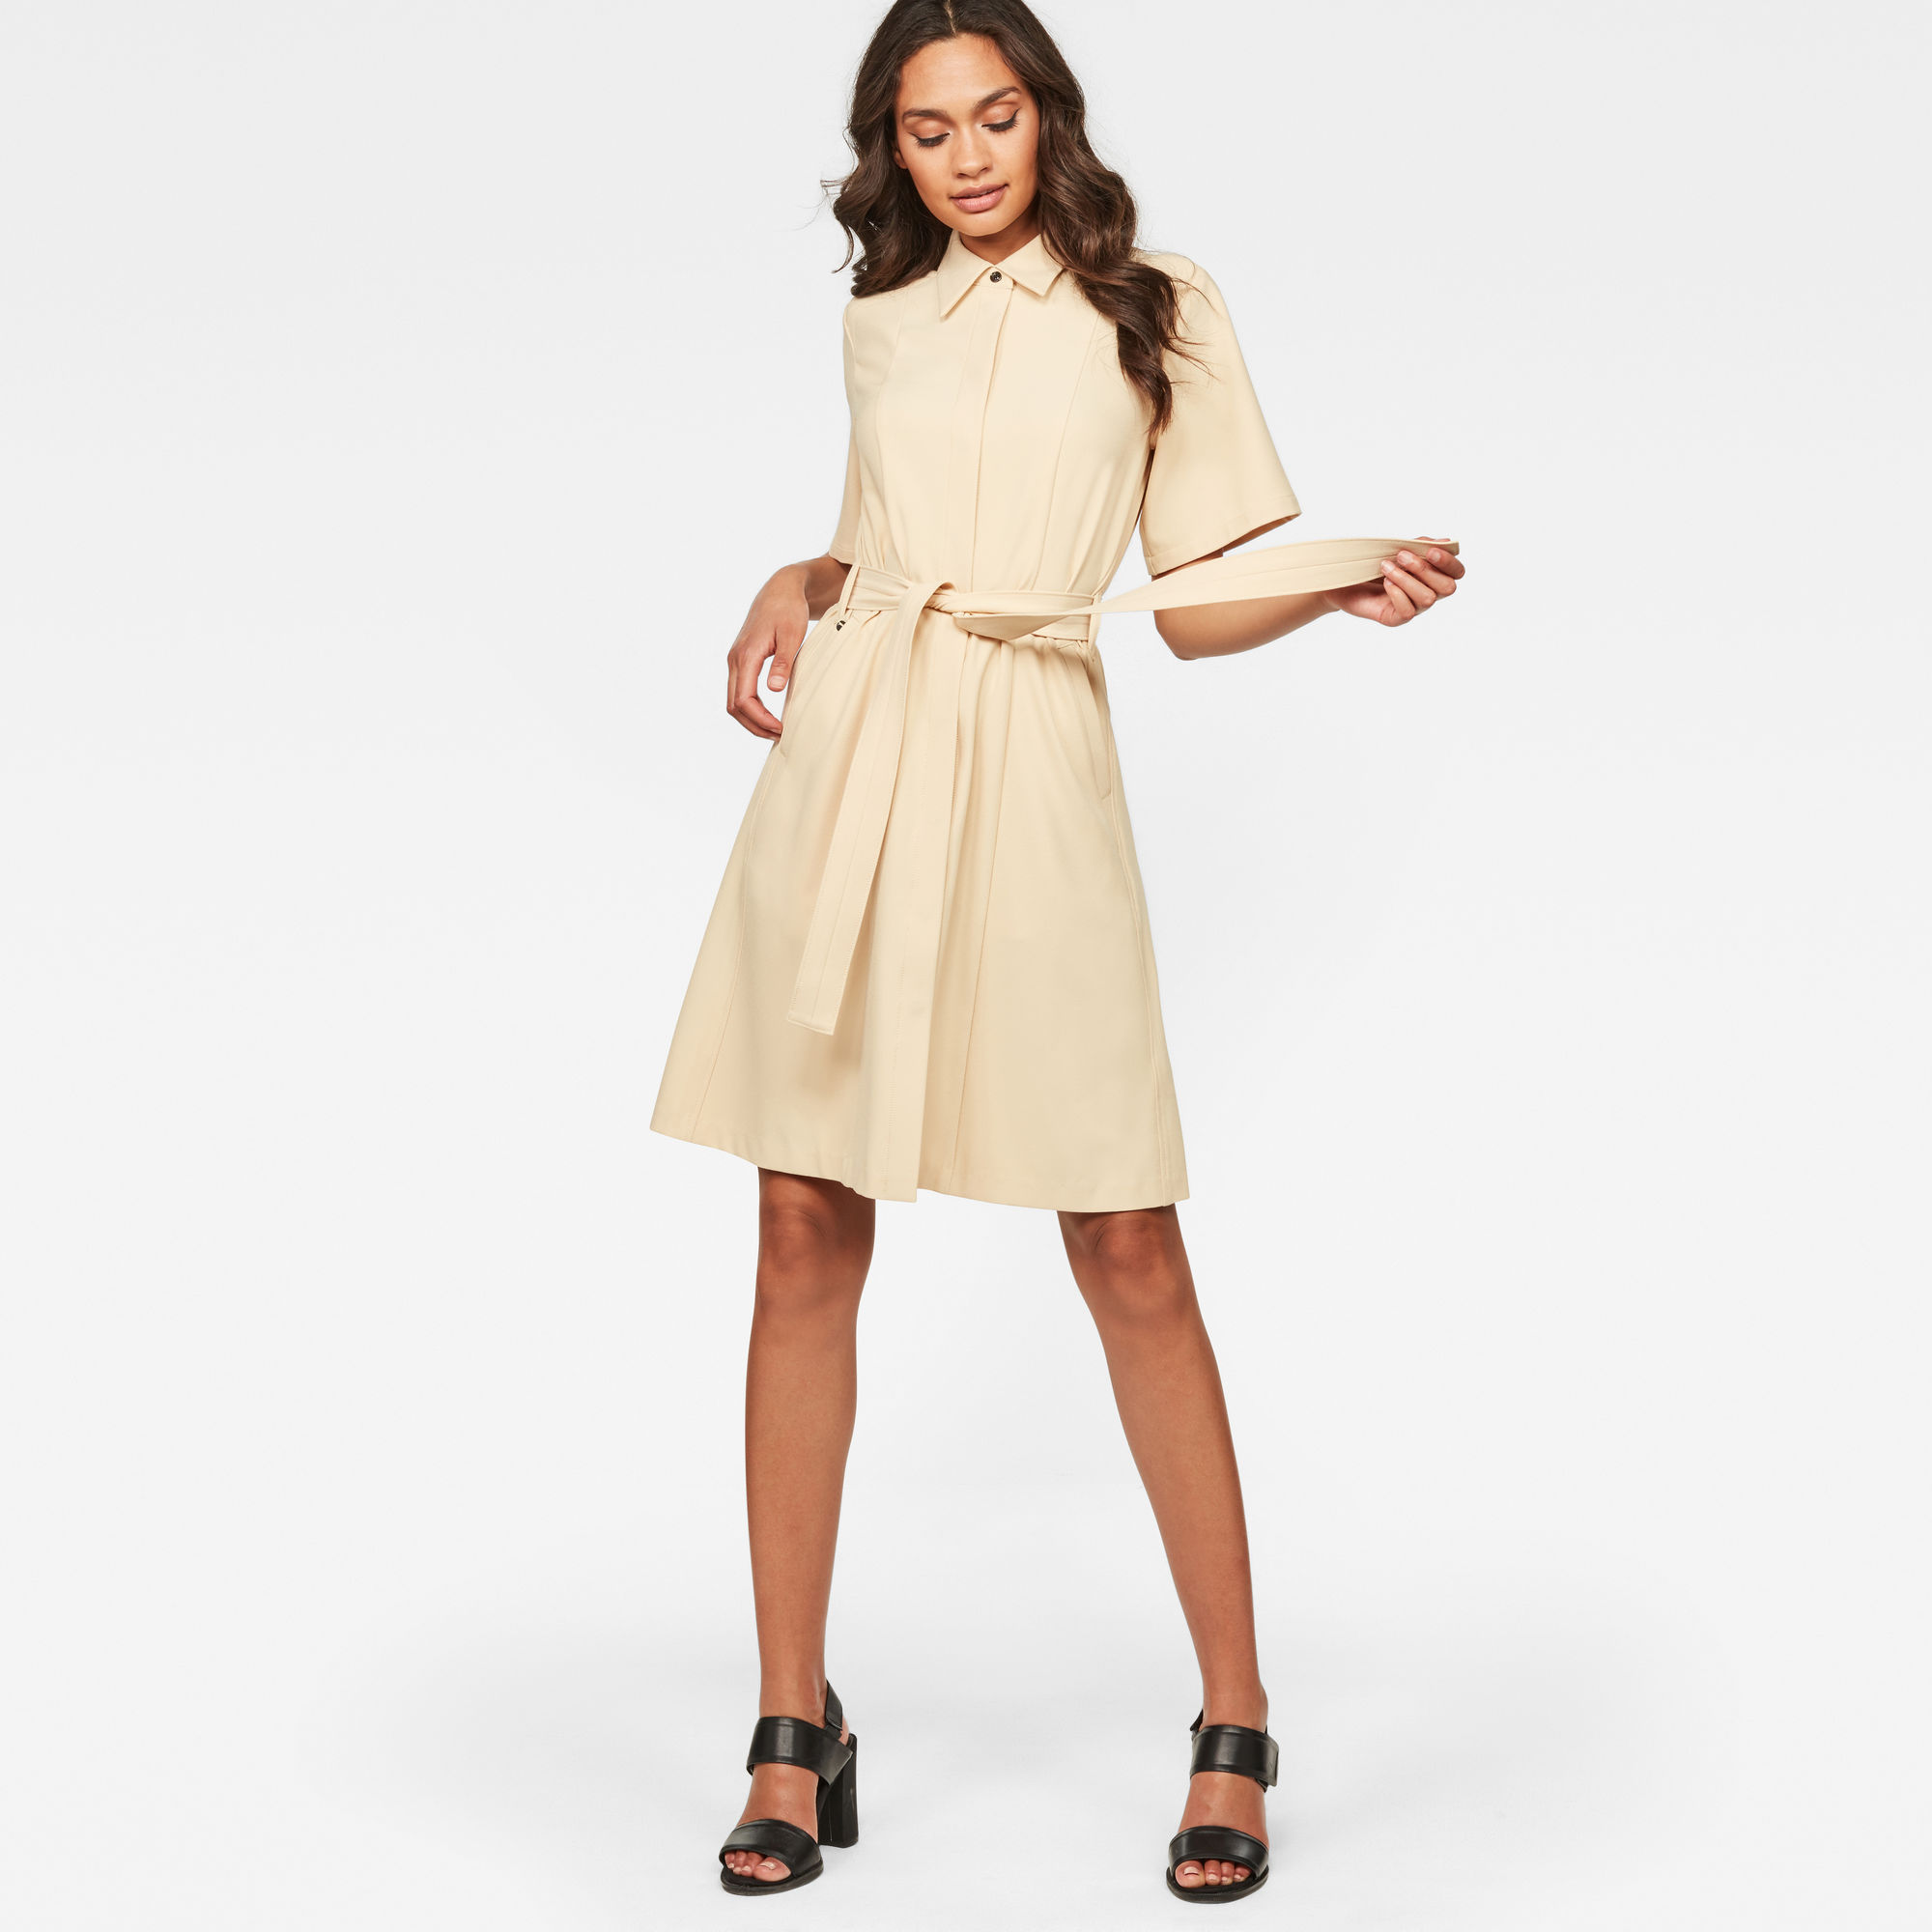 Image of G Star Raw Bristum Deconstructed Shirt Dress